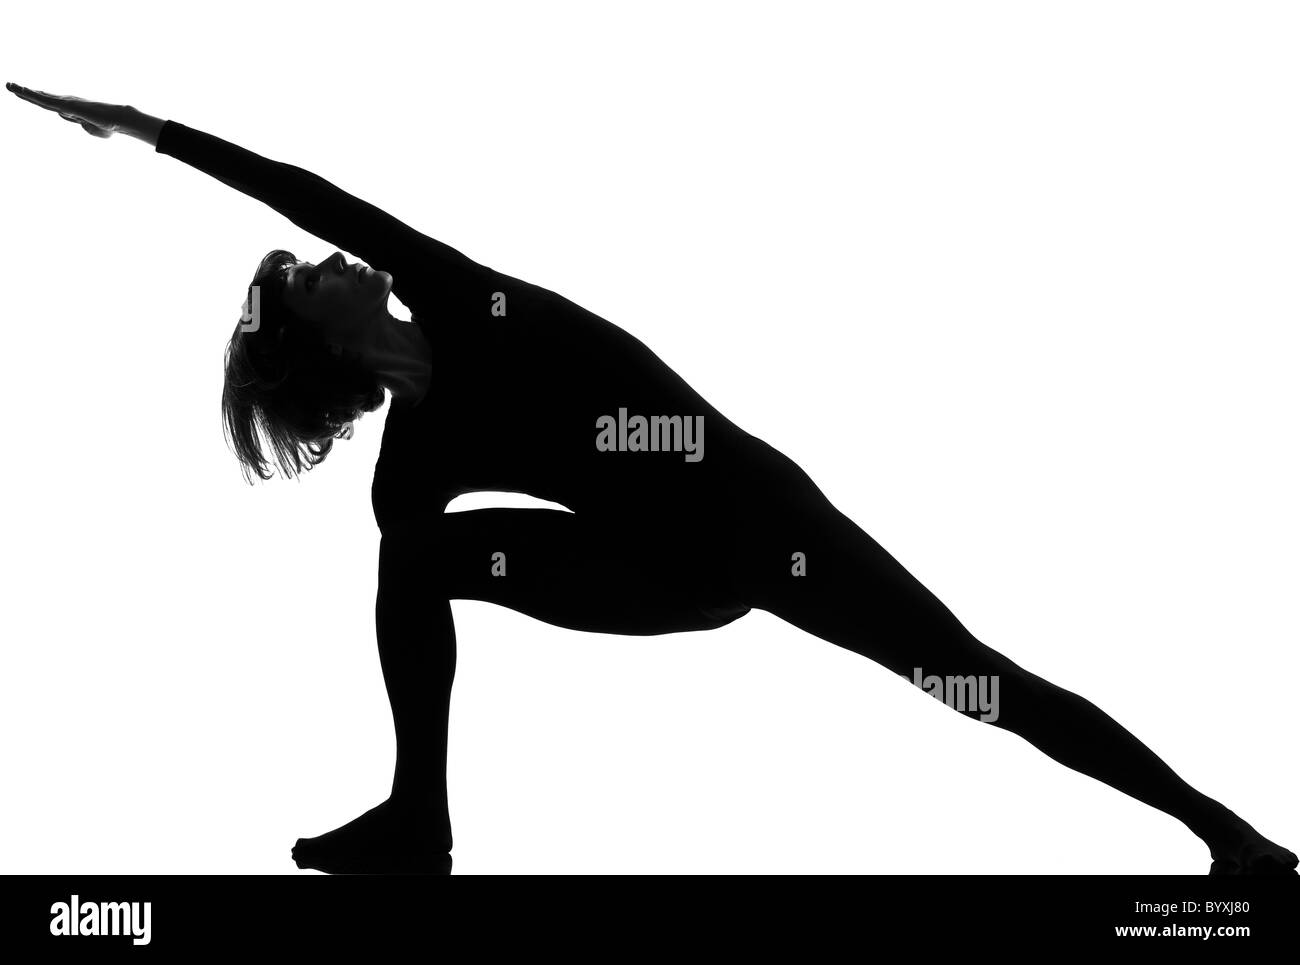 woman yoga posture Extended Side Angle Pose position in silouhette on studio white background - Stock Image